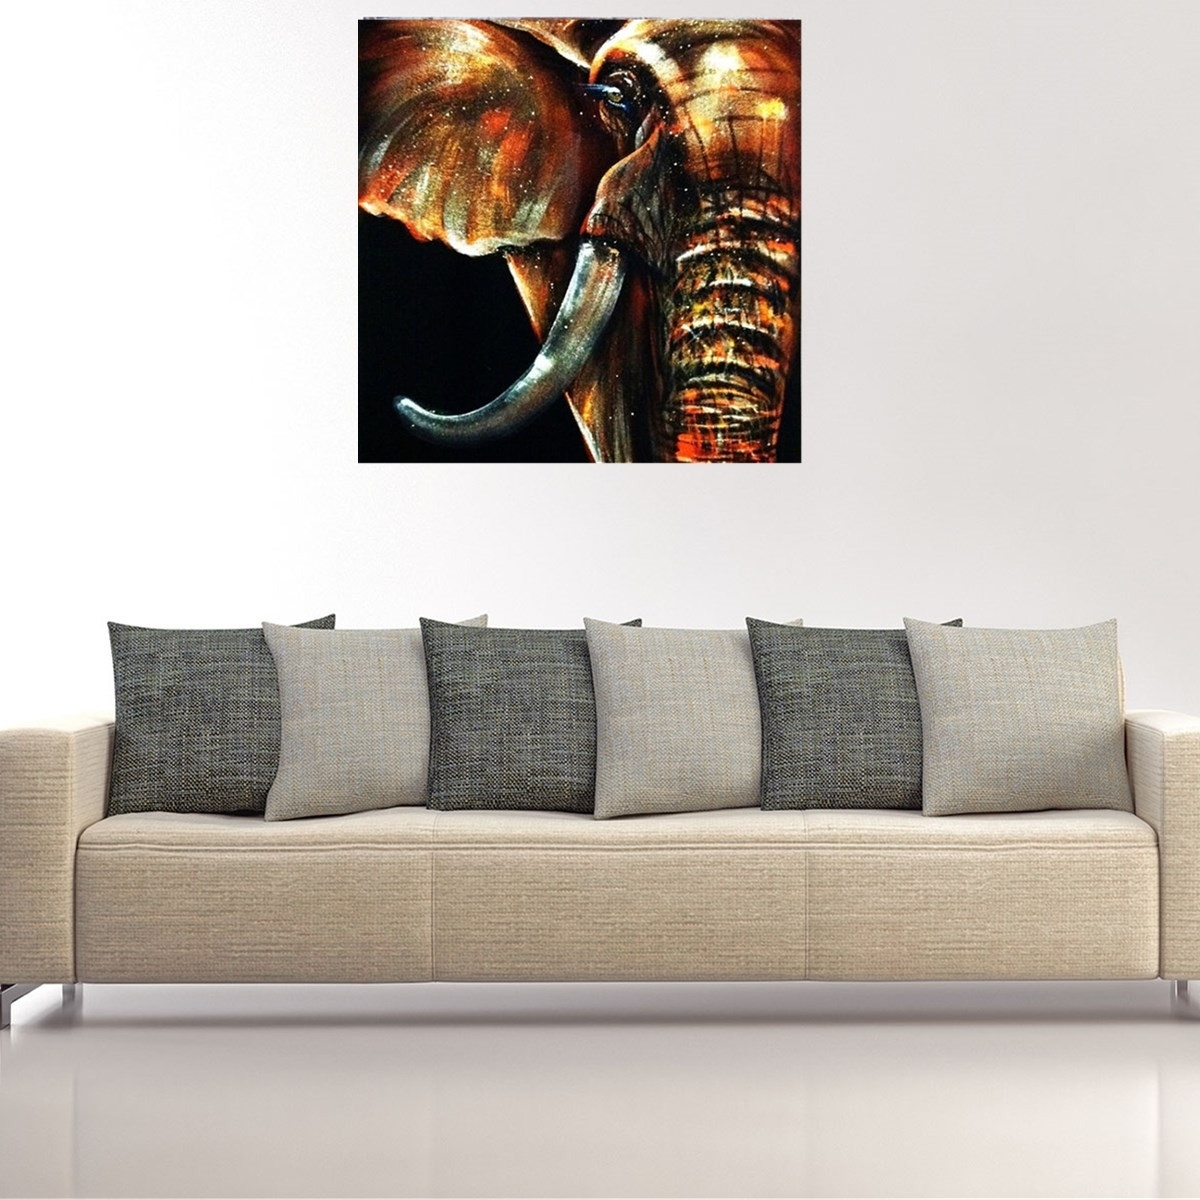 50x50cm Modern Abstract Huge Elephant Wall Art Decor Oil Painting Throughout Current Abstract Elephant Wall Art (View 10 of 20)